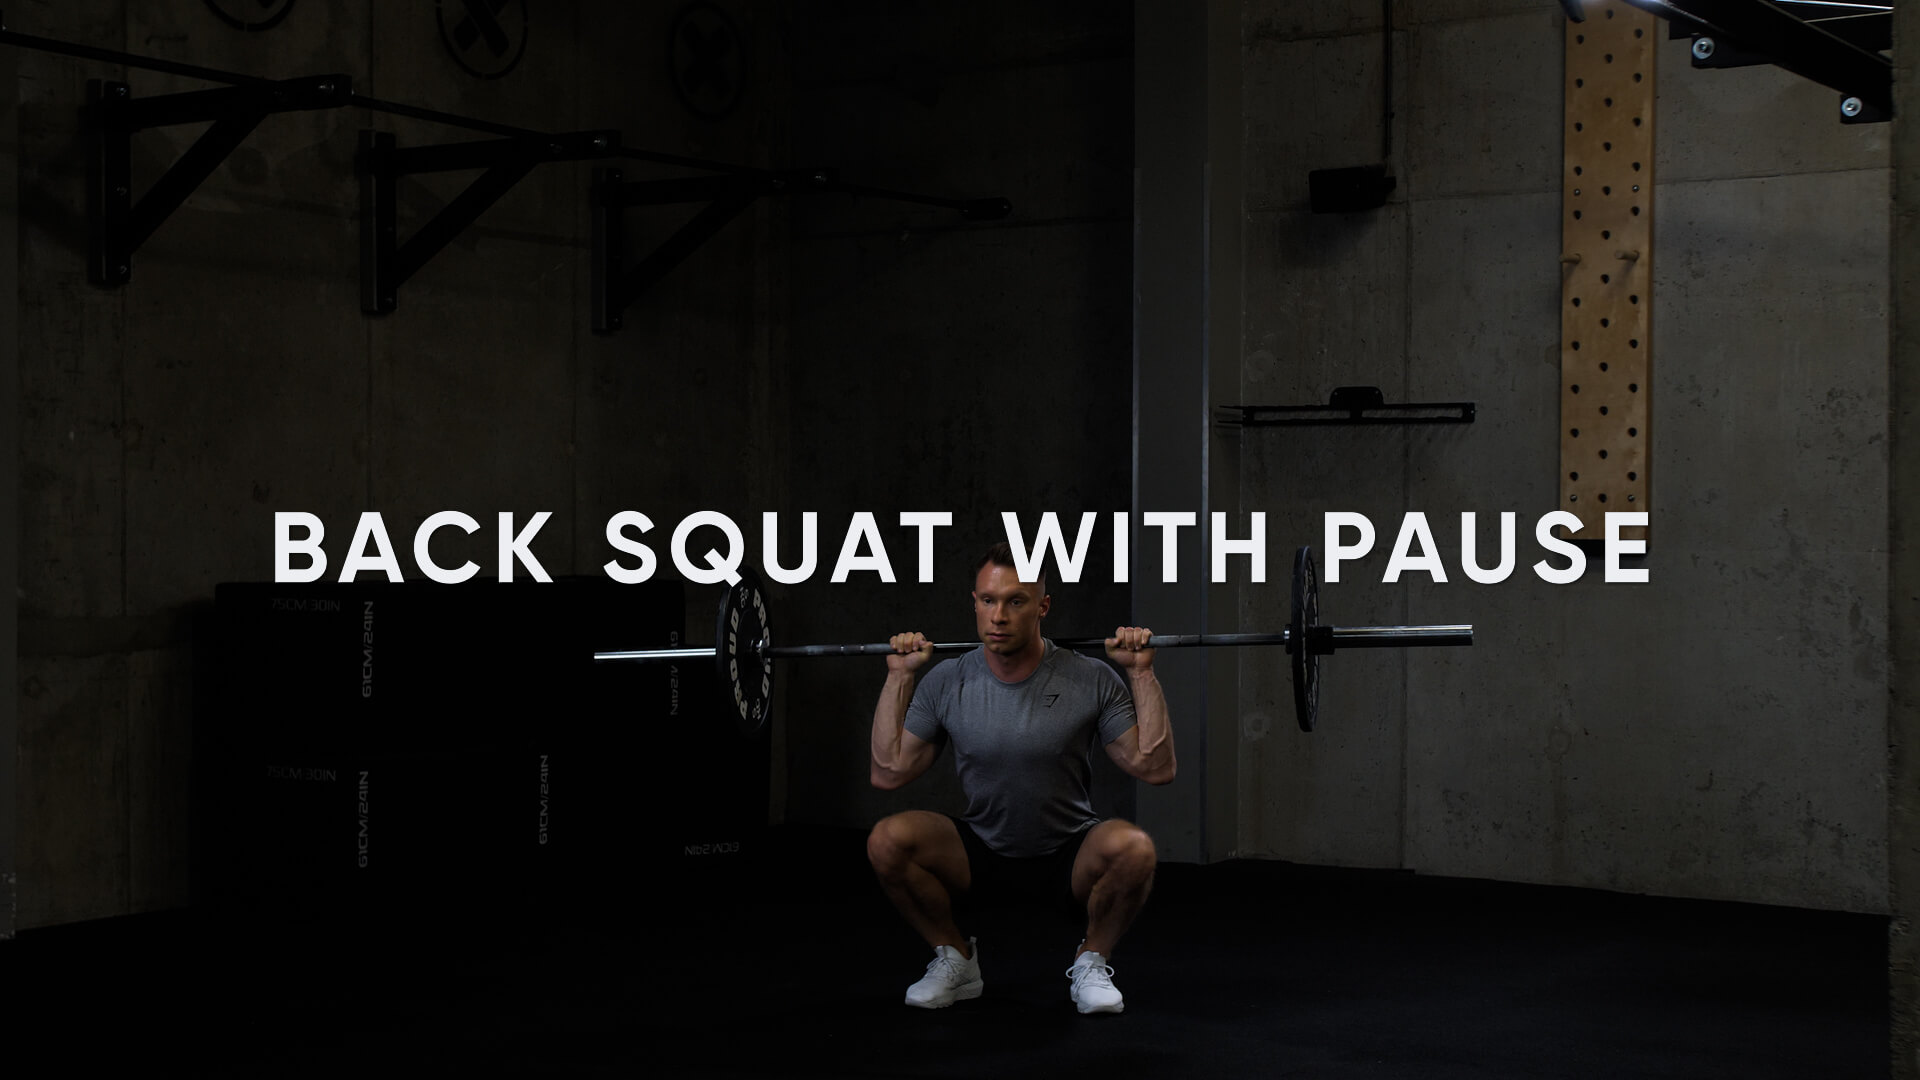 Back Squat with Pause